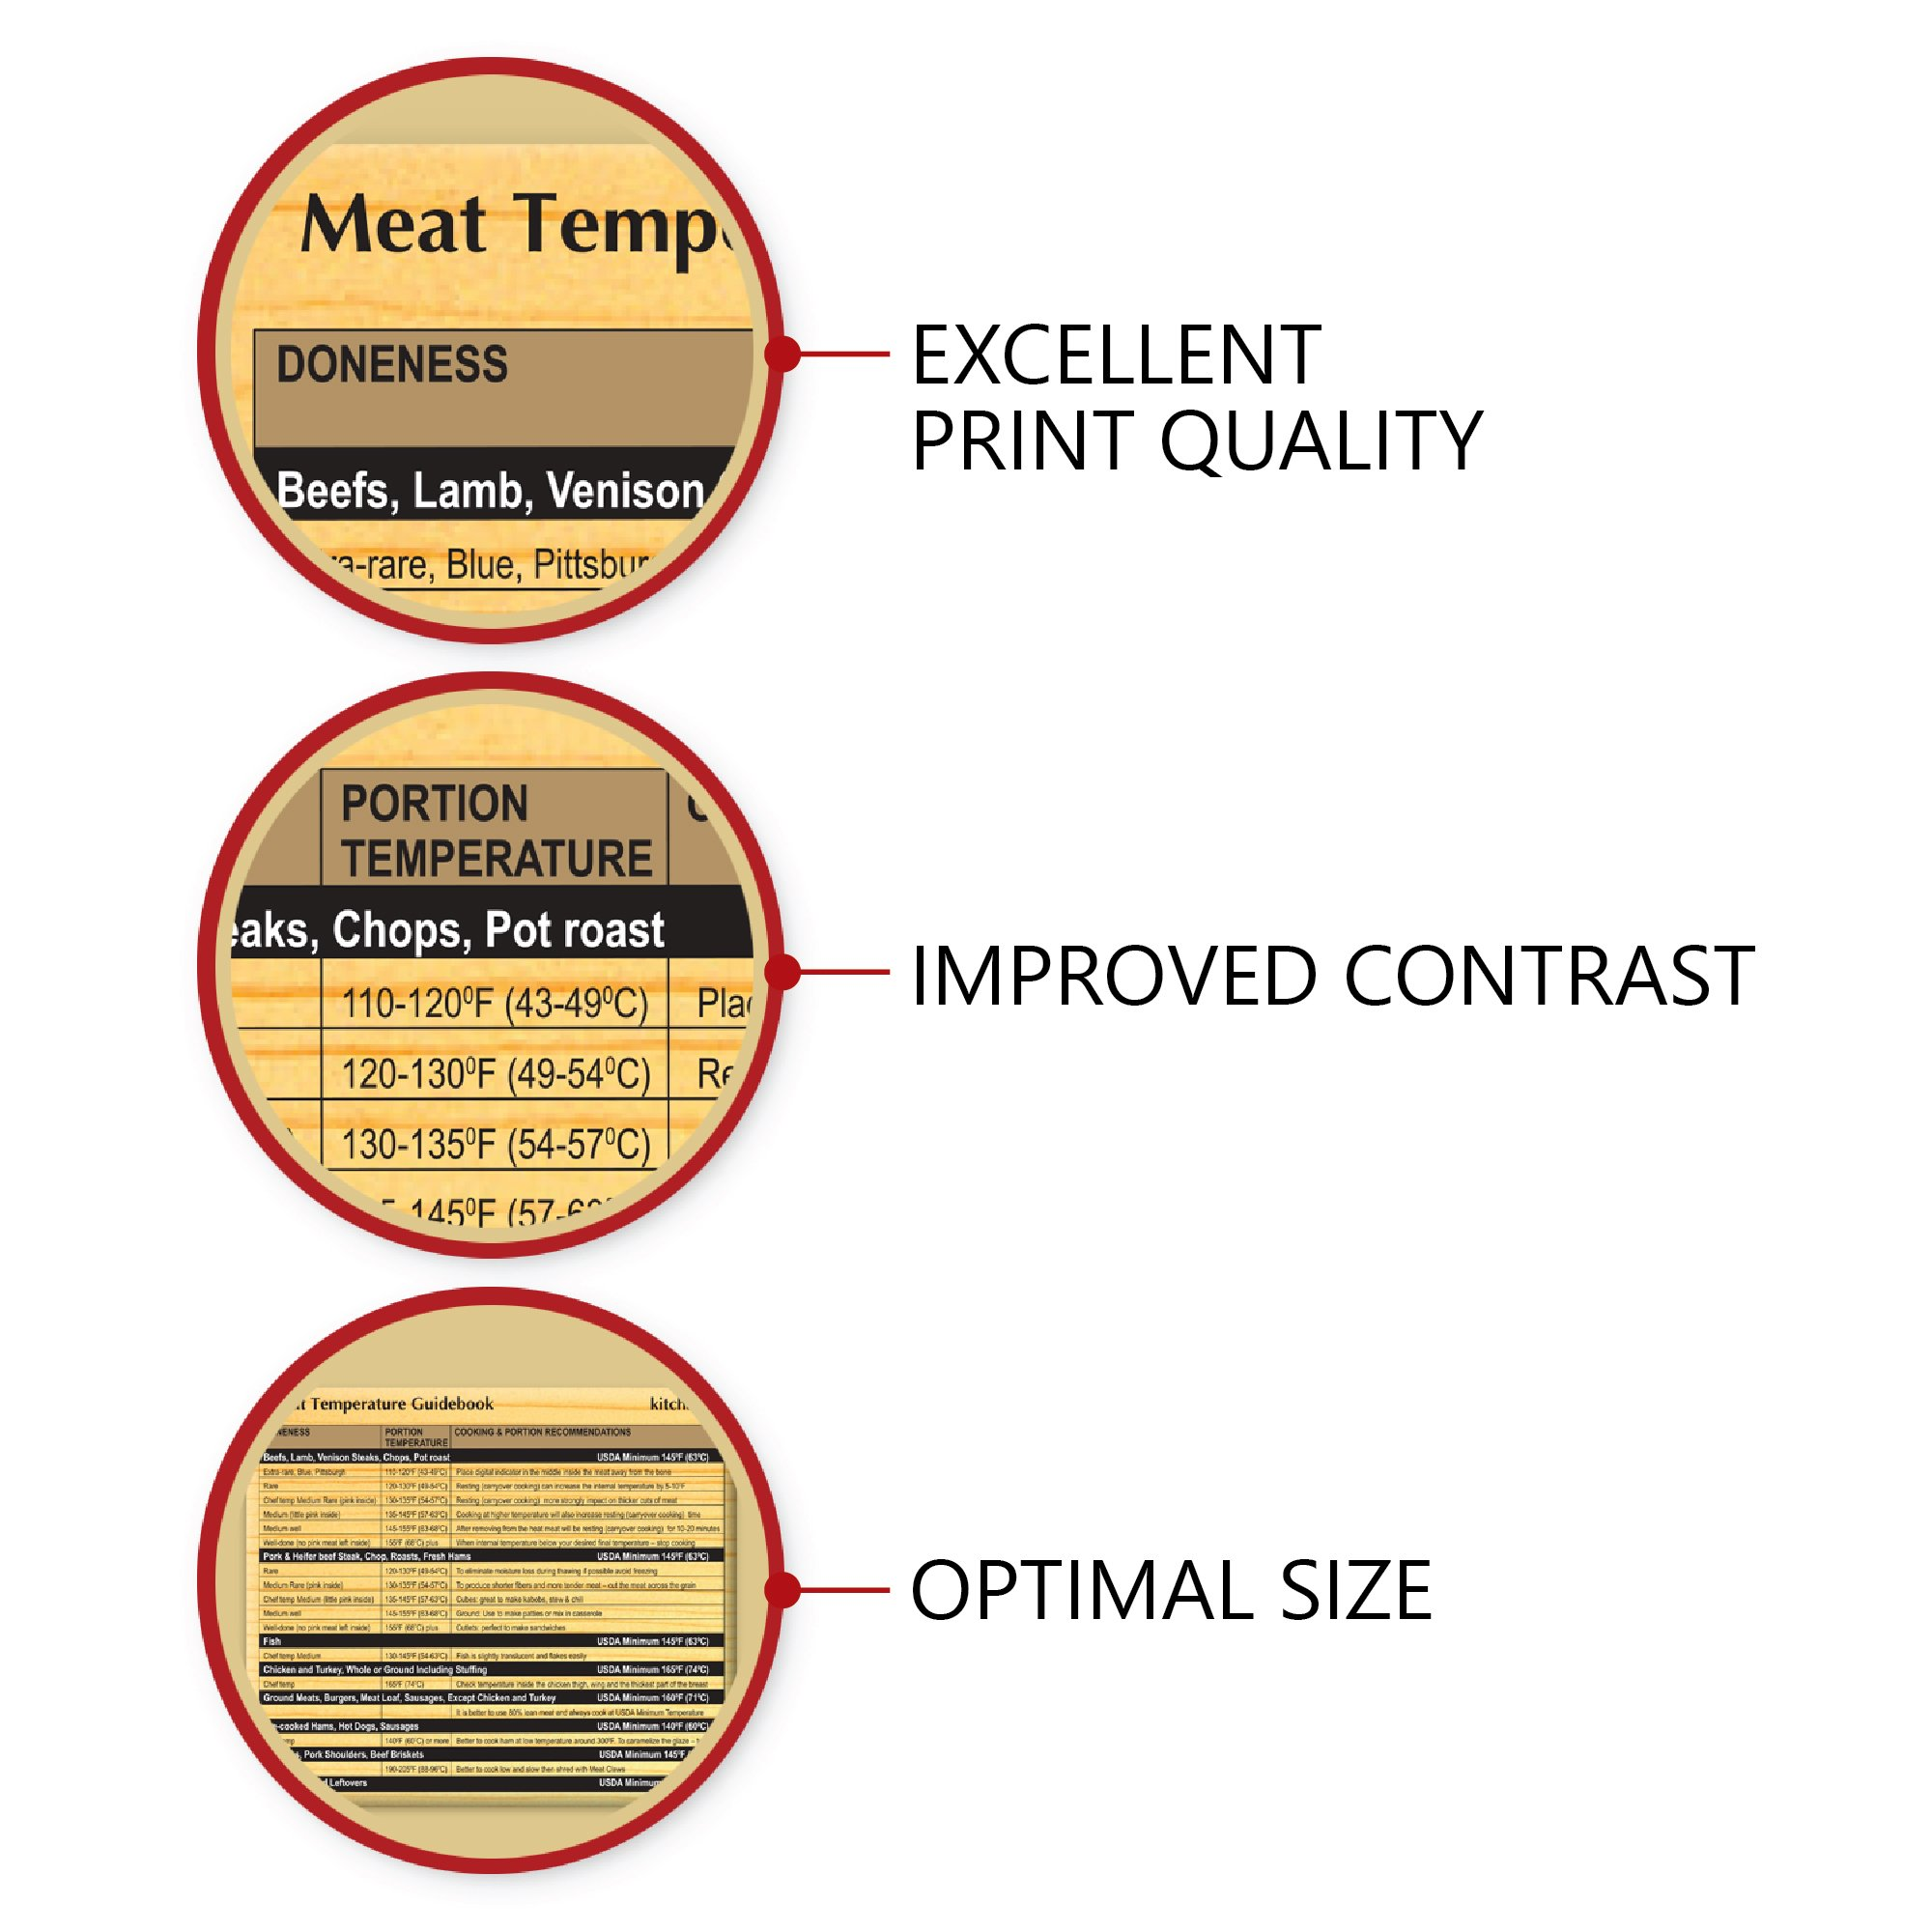 photo regarding Oven Temperature Conversion Chart Printable named Meat Thermometer Magnet - Fridge Temp Grill Magnet